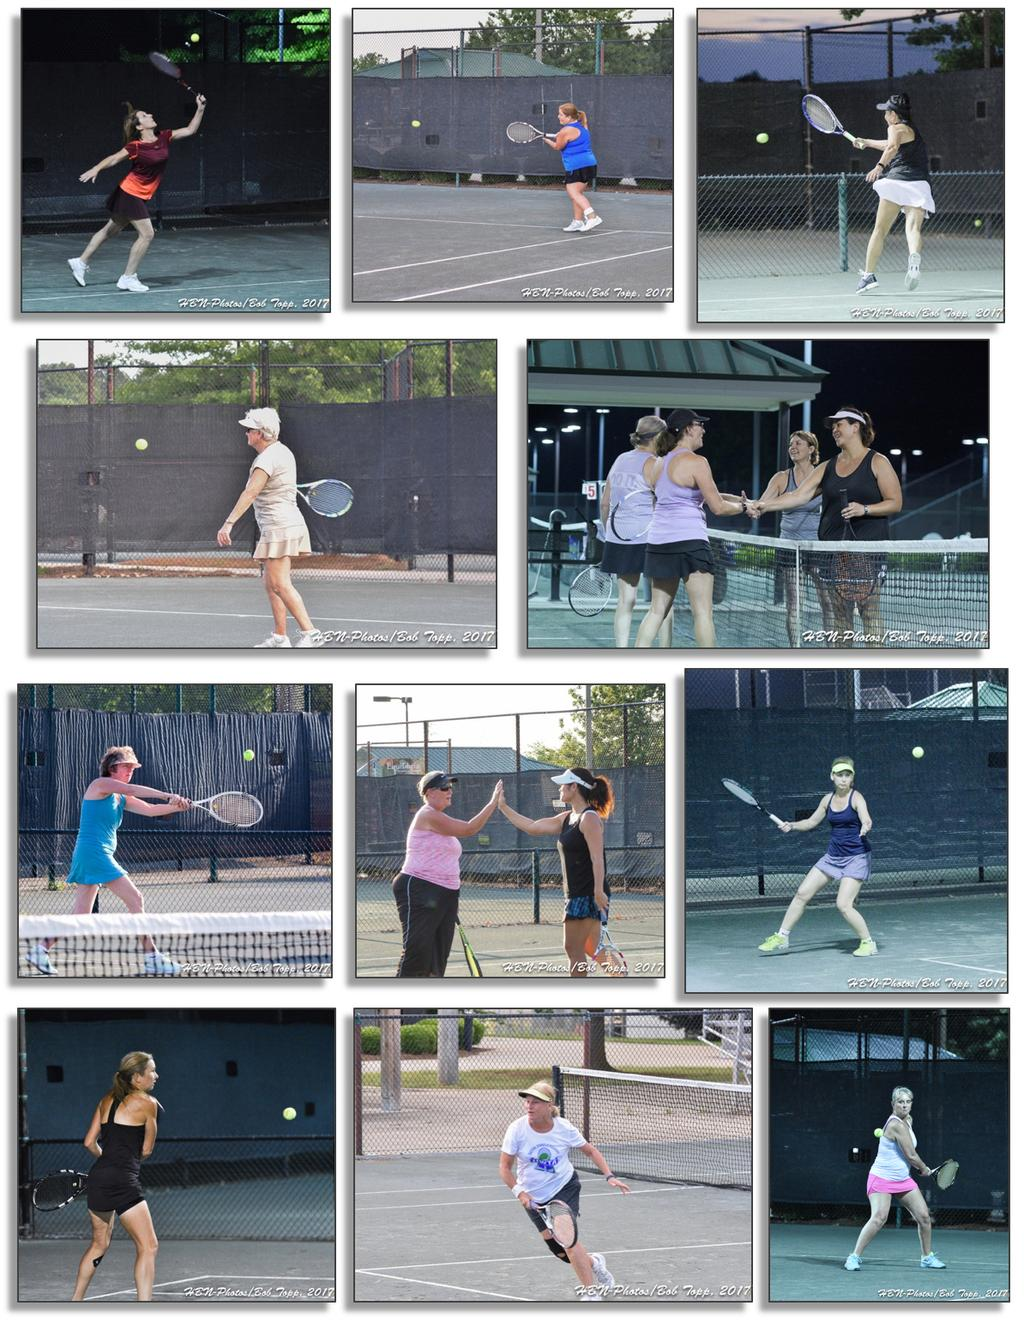 A BIG thank you to Bob Topp for sharing these amazing photos of our Spring Tournament.